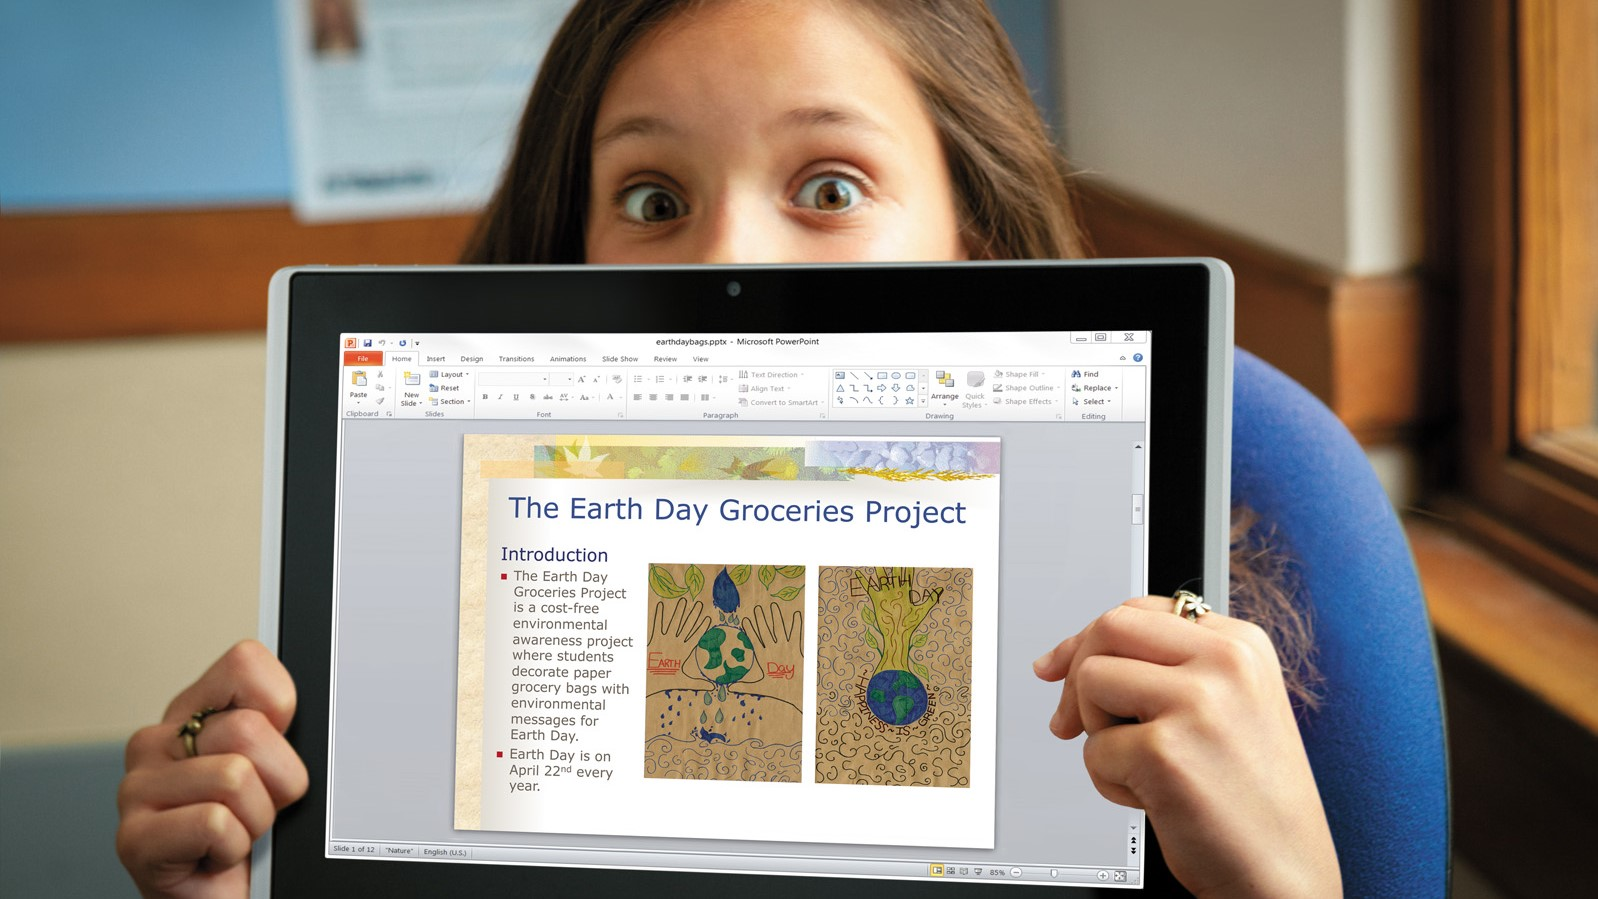 A student shows off their Earth Day project on a Windows 10 device